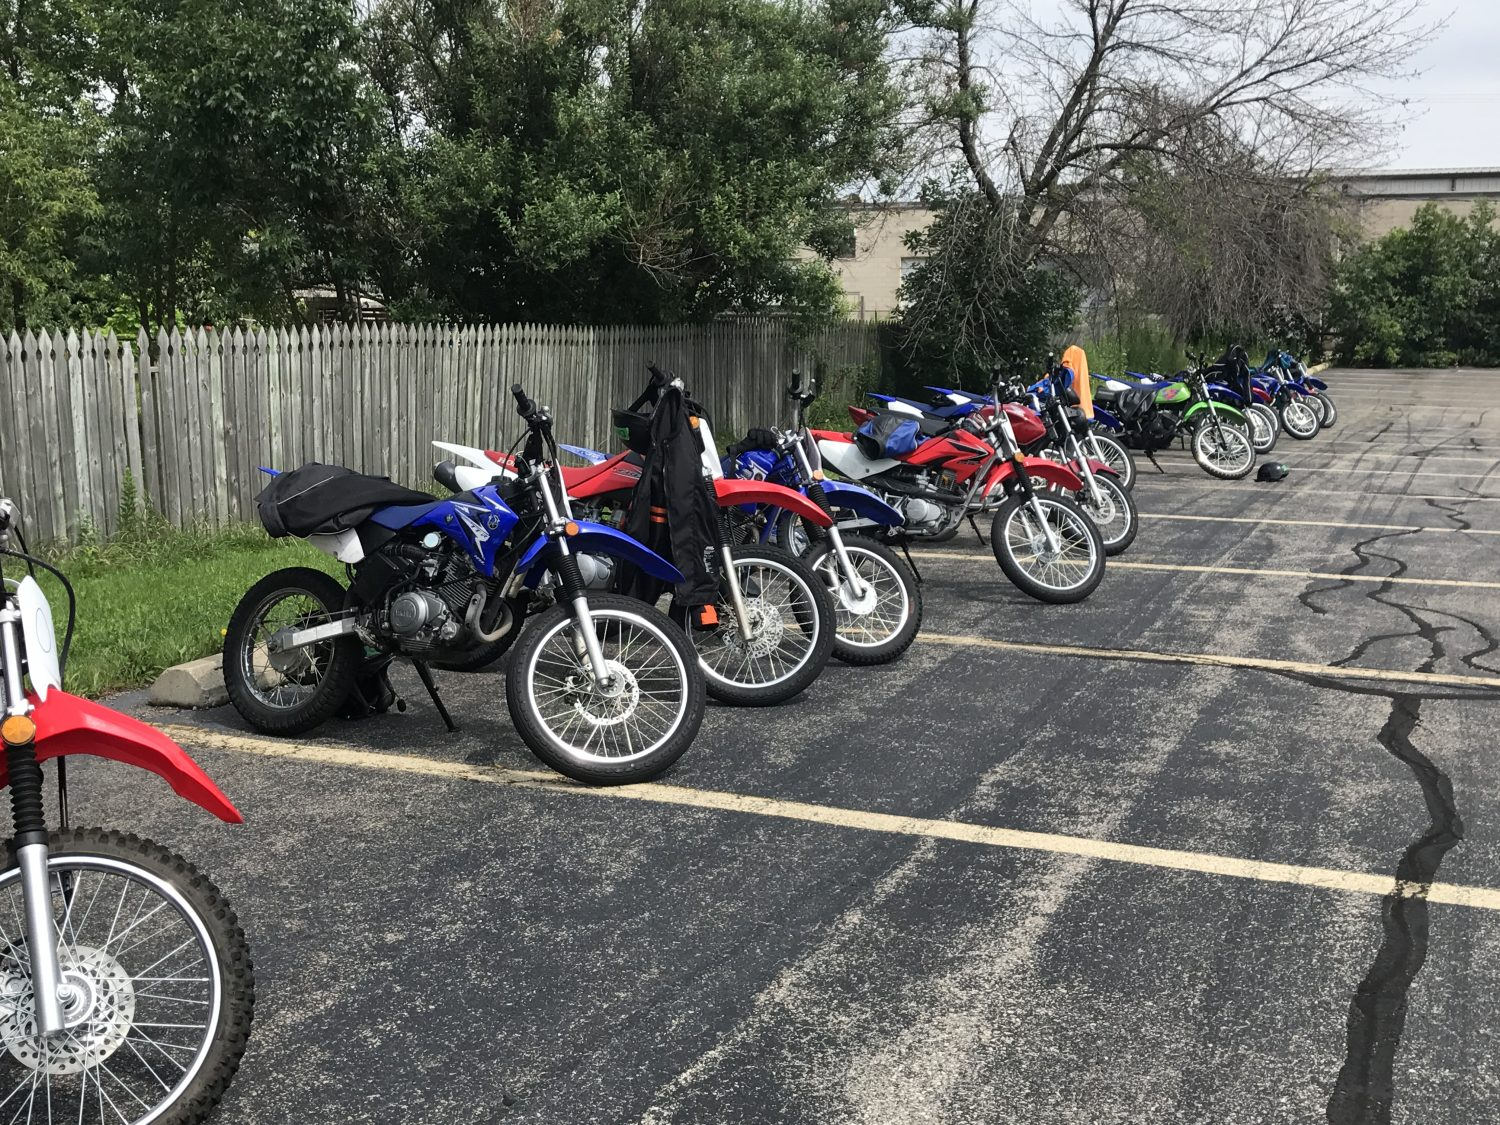 Time to park the bikes and head to lunch